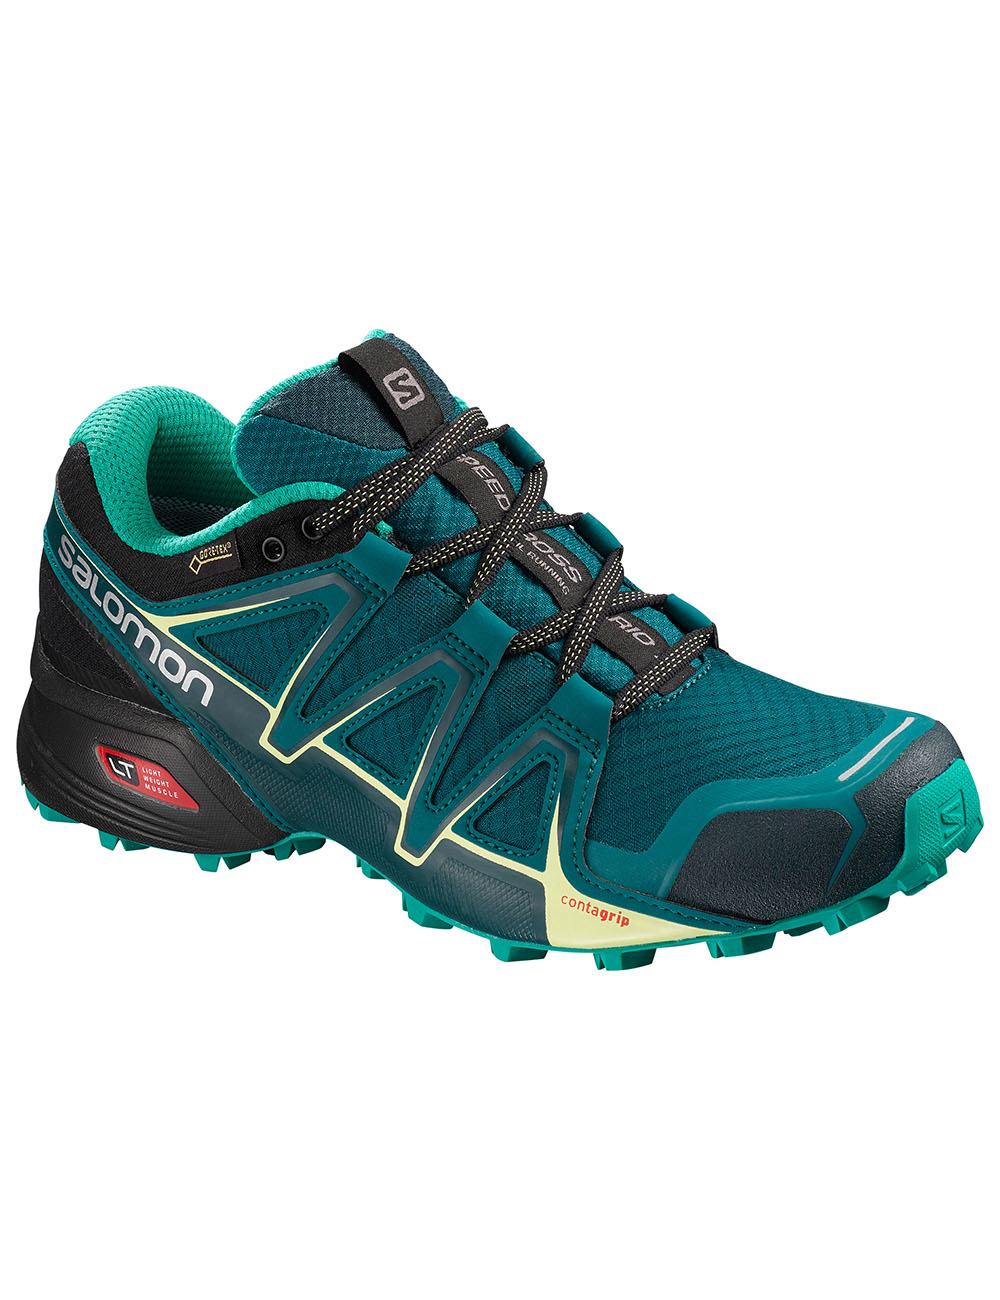 Salomon SPEEDCROSS VARIO 2 W | sportisimo.at